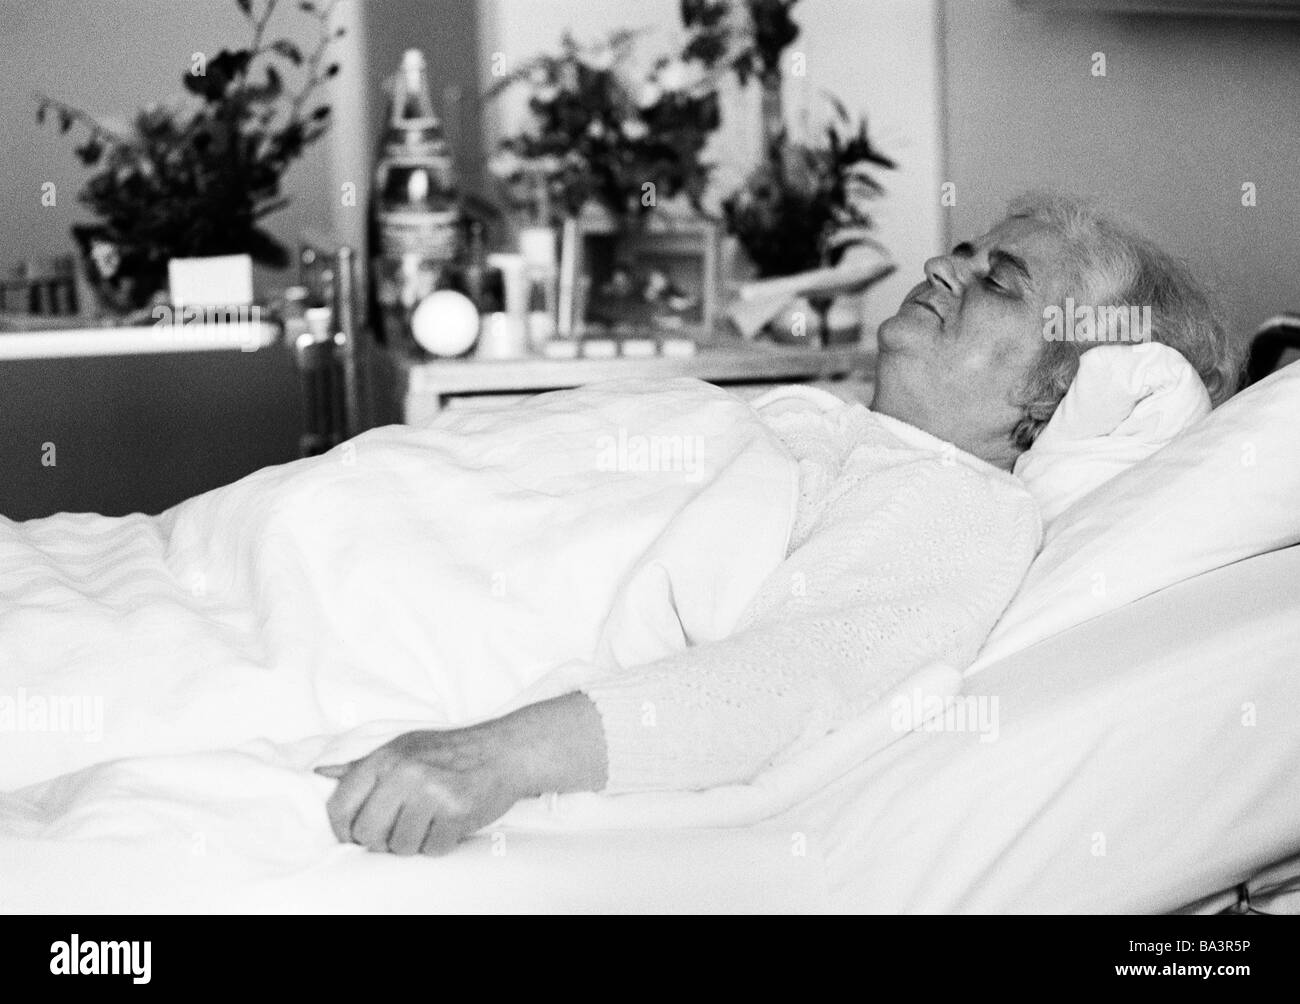 Eighties, black and white photo, people, health, older woman lies in a sickbed of a hospital sleeping, aged 70 to - Stock Image